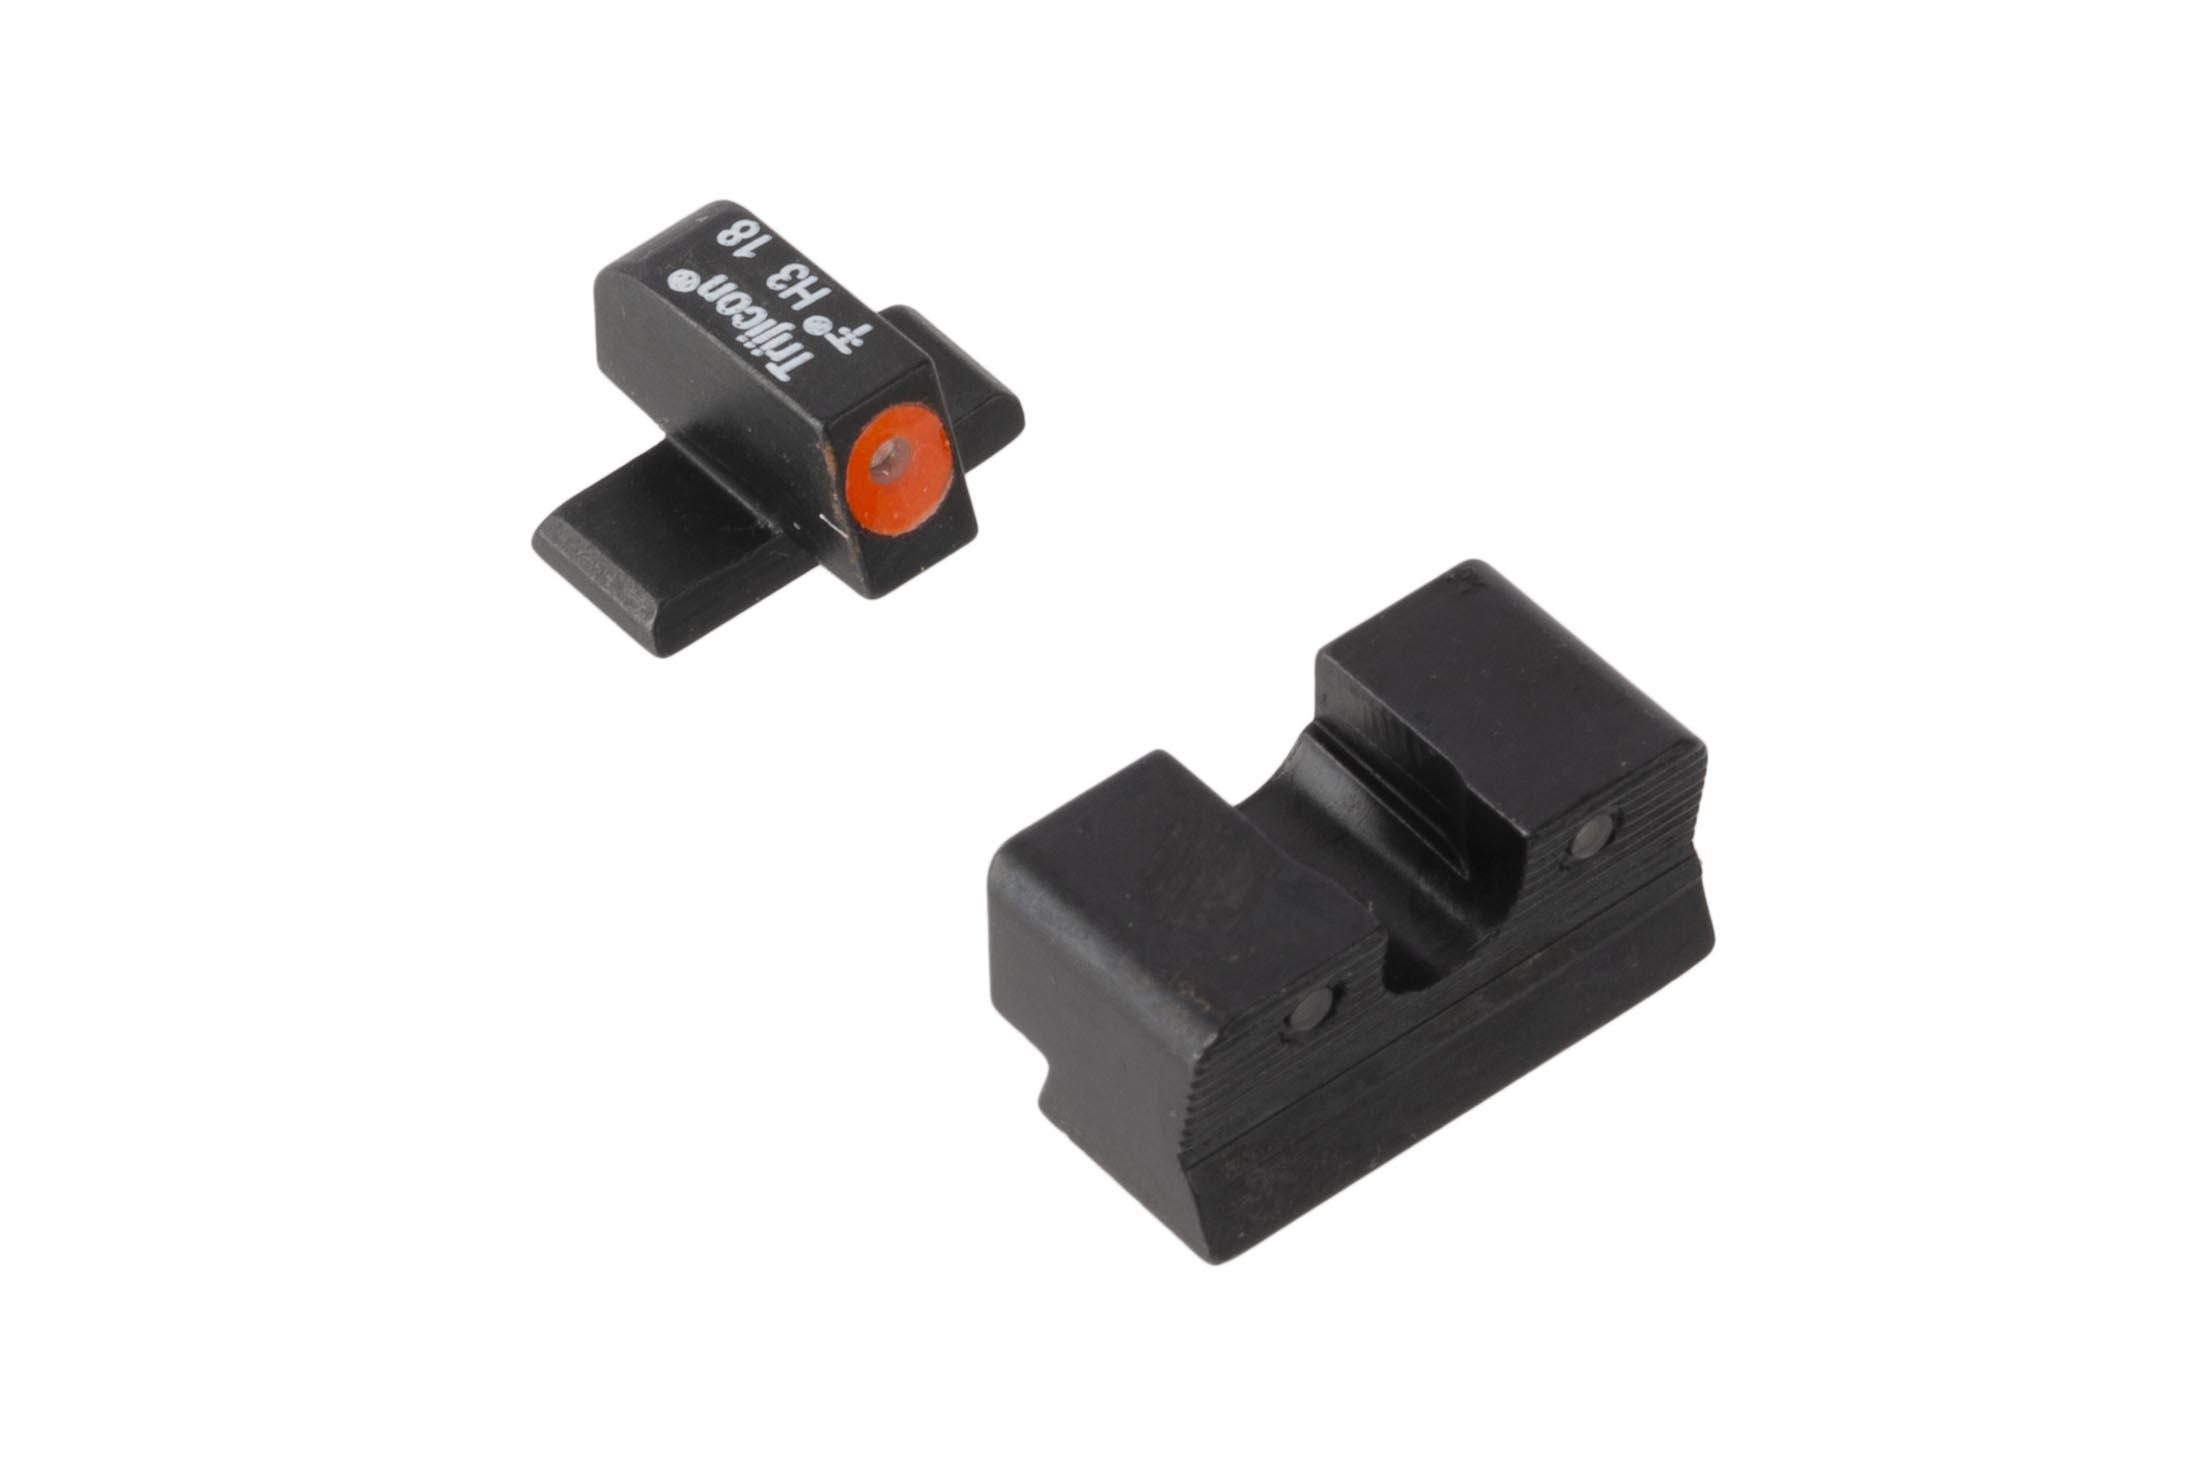 Trijicon HD Night Sights for Springfield XDs pistols feature a photoluminescent orange ring around the front lamp with blacked out rear lamps.